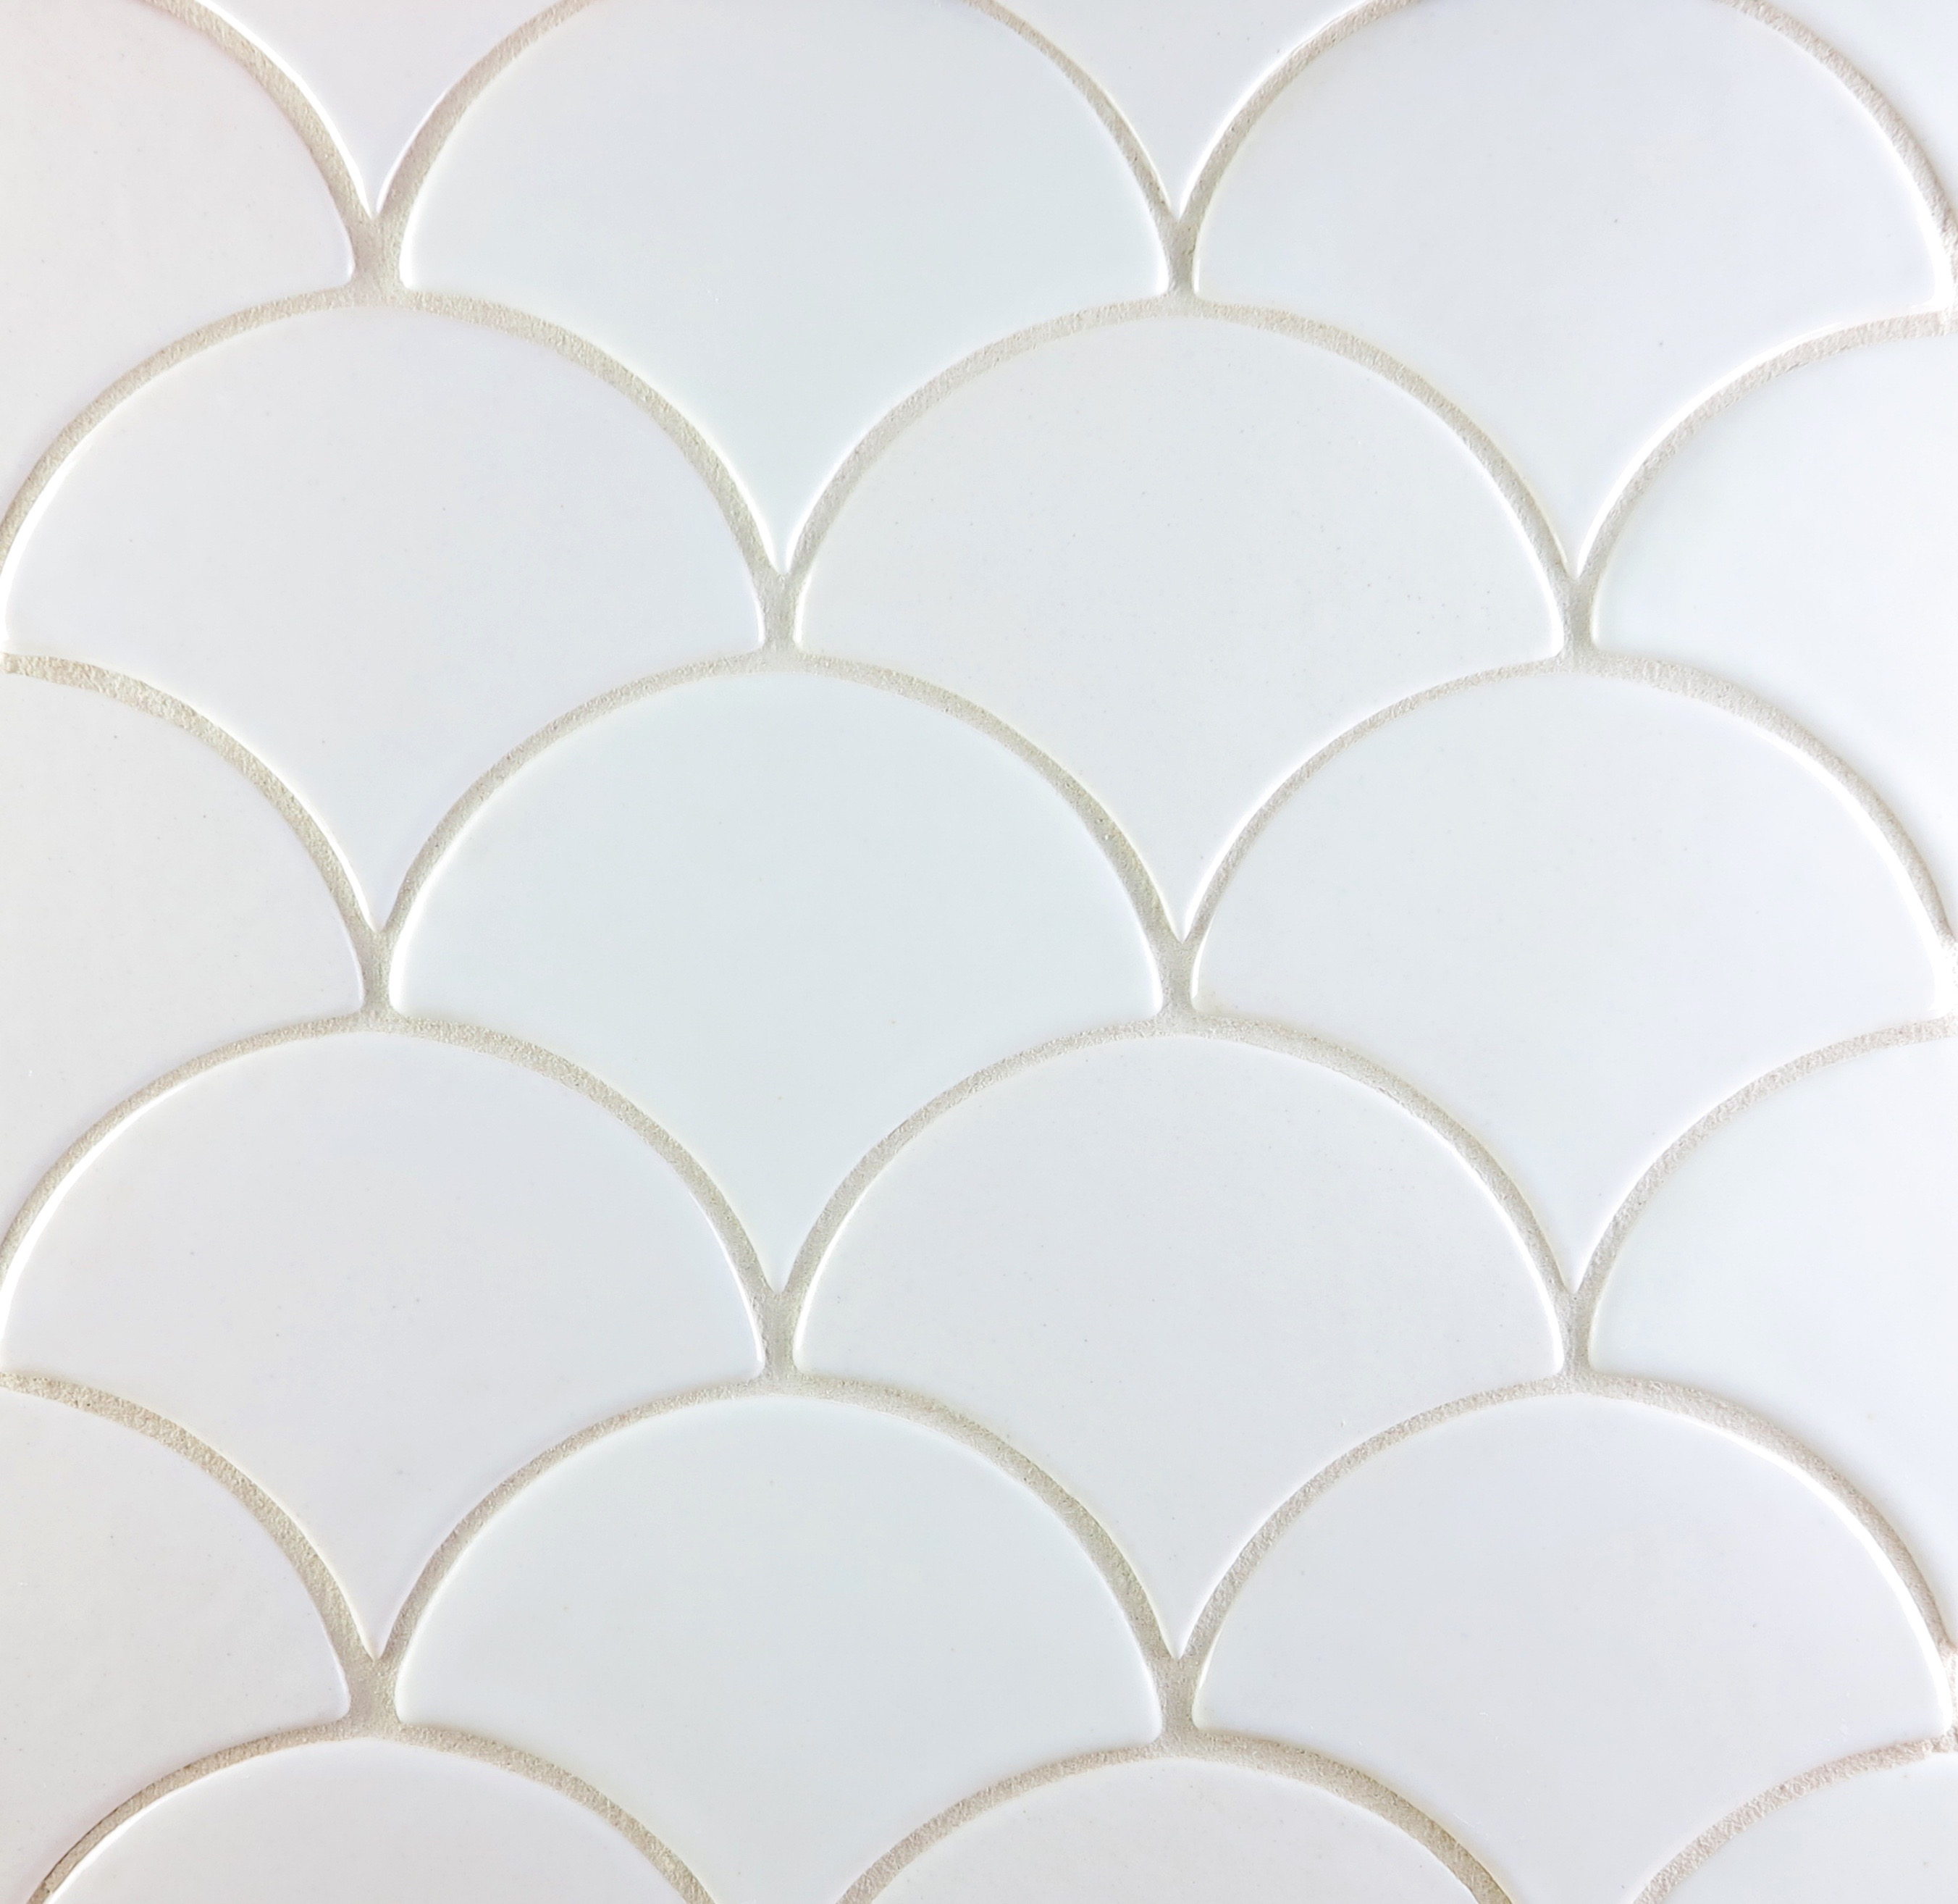 Design crush black white handmade tile julep tile company this scallop pattern below also known as fish scale tile is a nice alternative to the traditional white subway tile its shown in three shades of white dailygadgetfo Choice Image